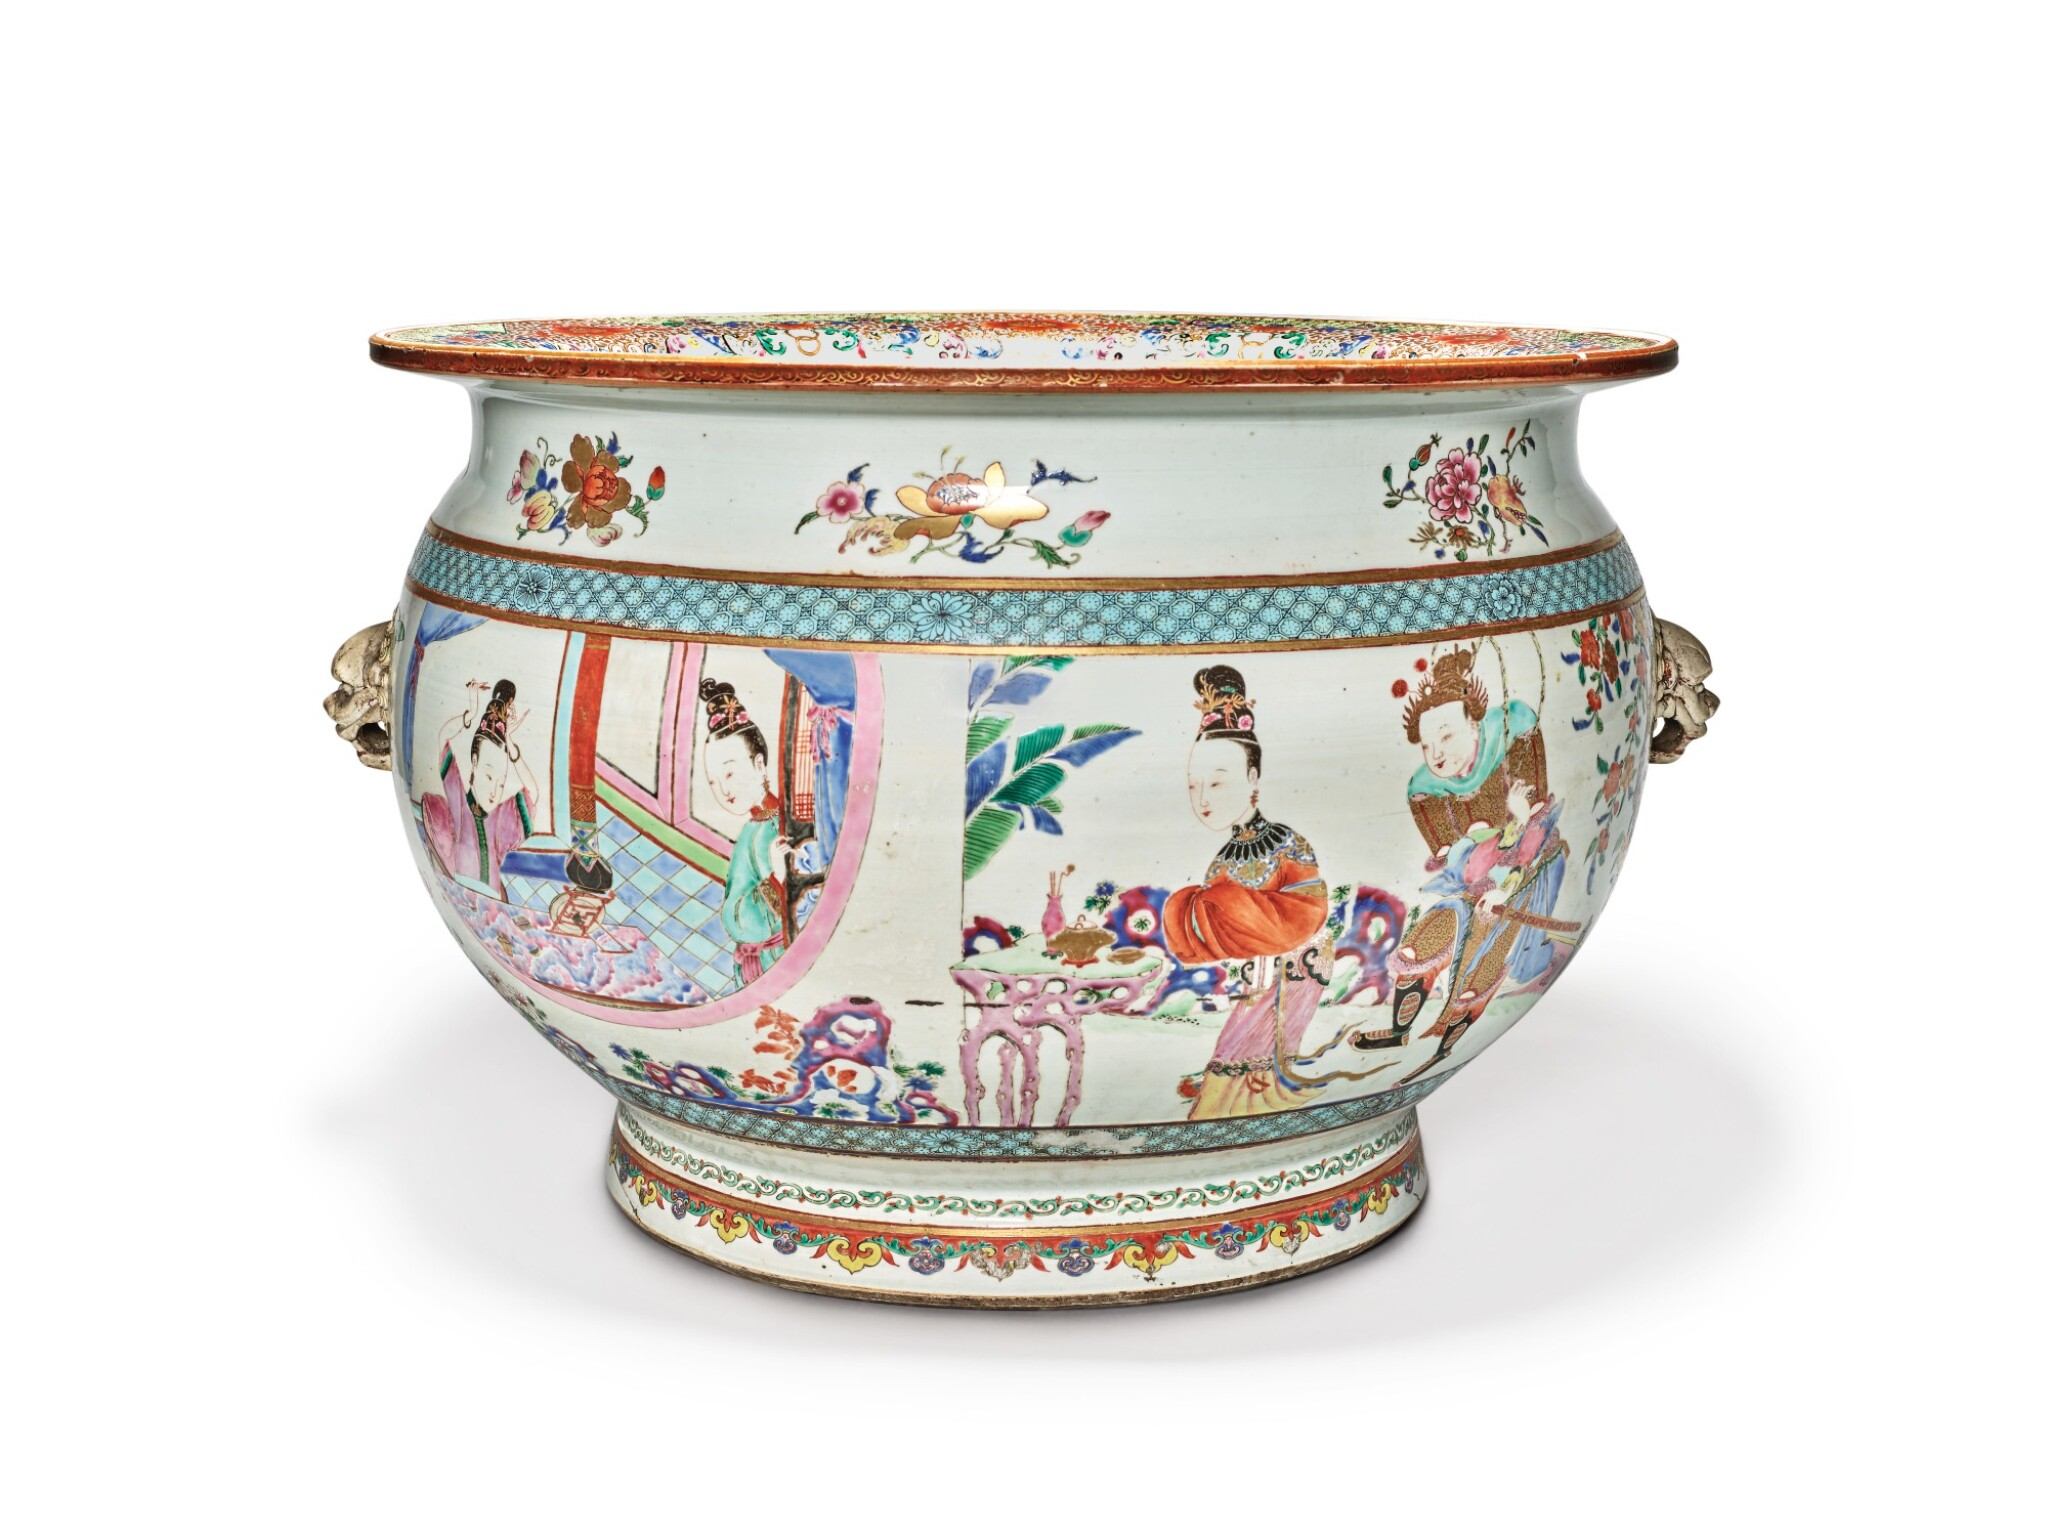 View full screen - View 1 of Lot 449. A Rare and Large Chinese Export Famille-rose 'Figures' Fishbowl, Qing Dynasty, Yongzheng Period | 清雍正  粉彩描金人物故事圖大缸.